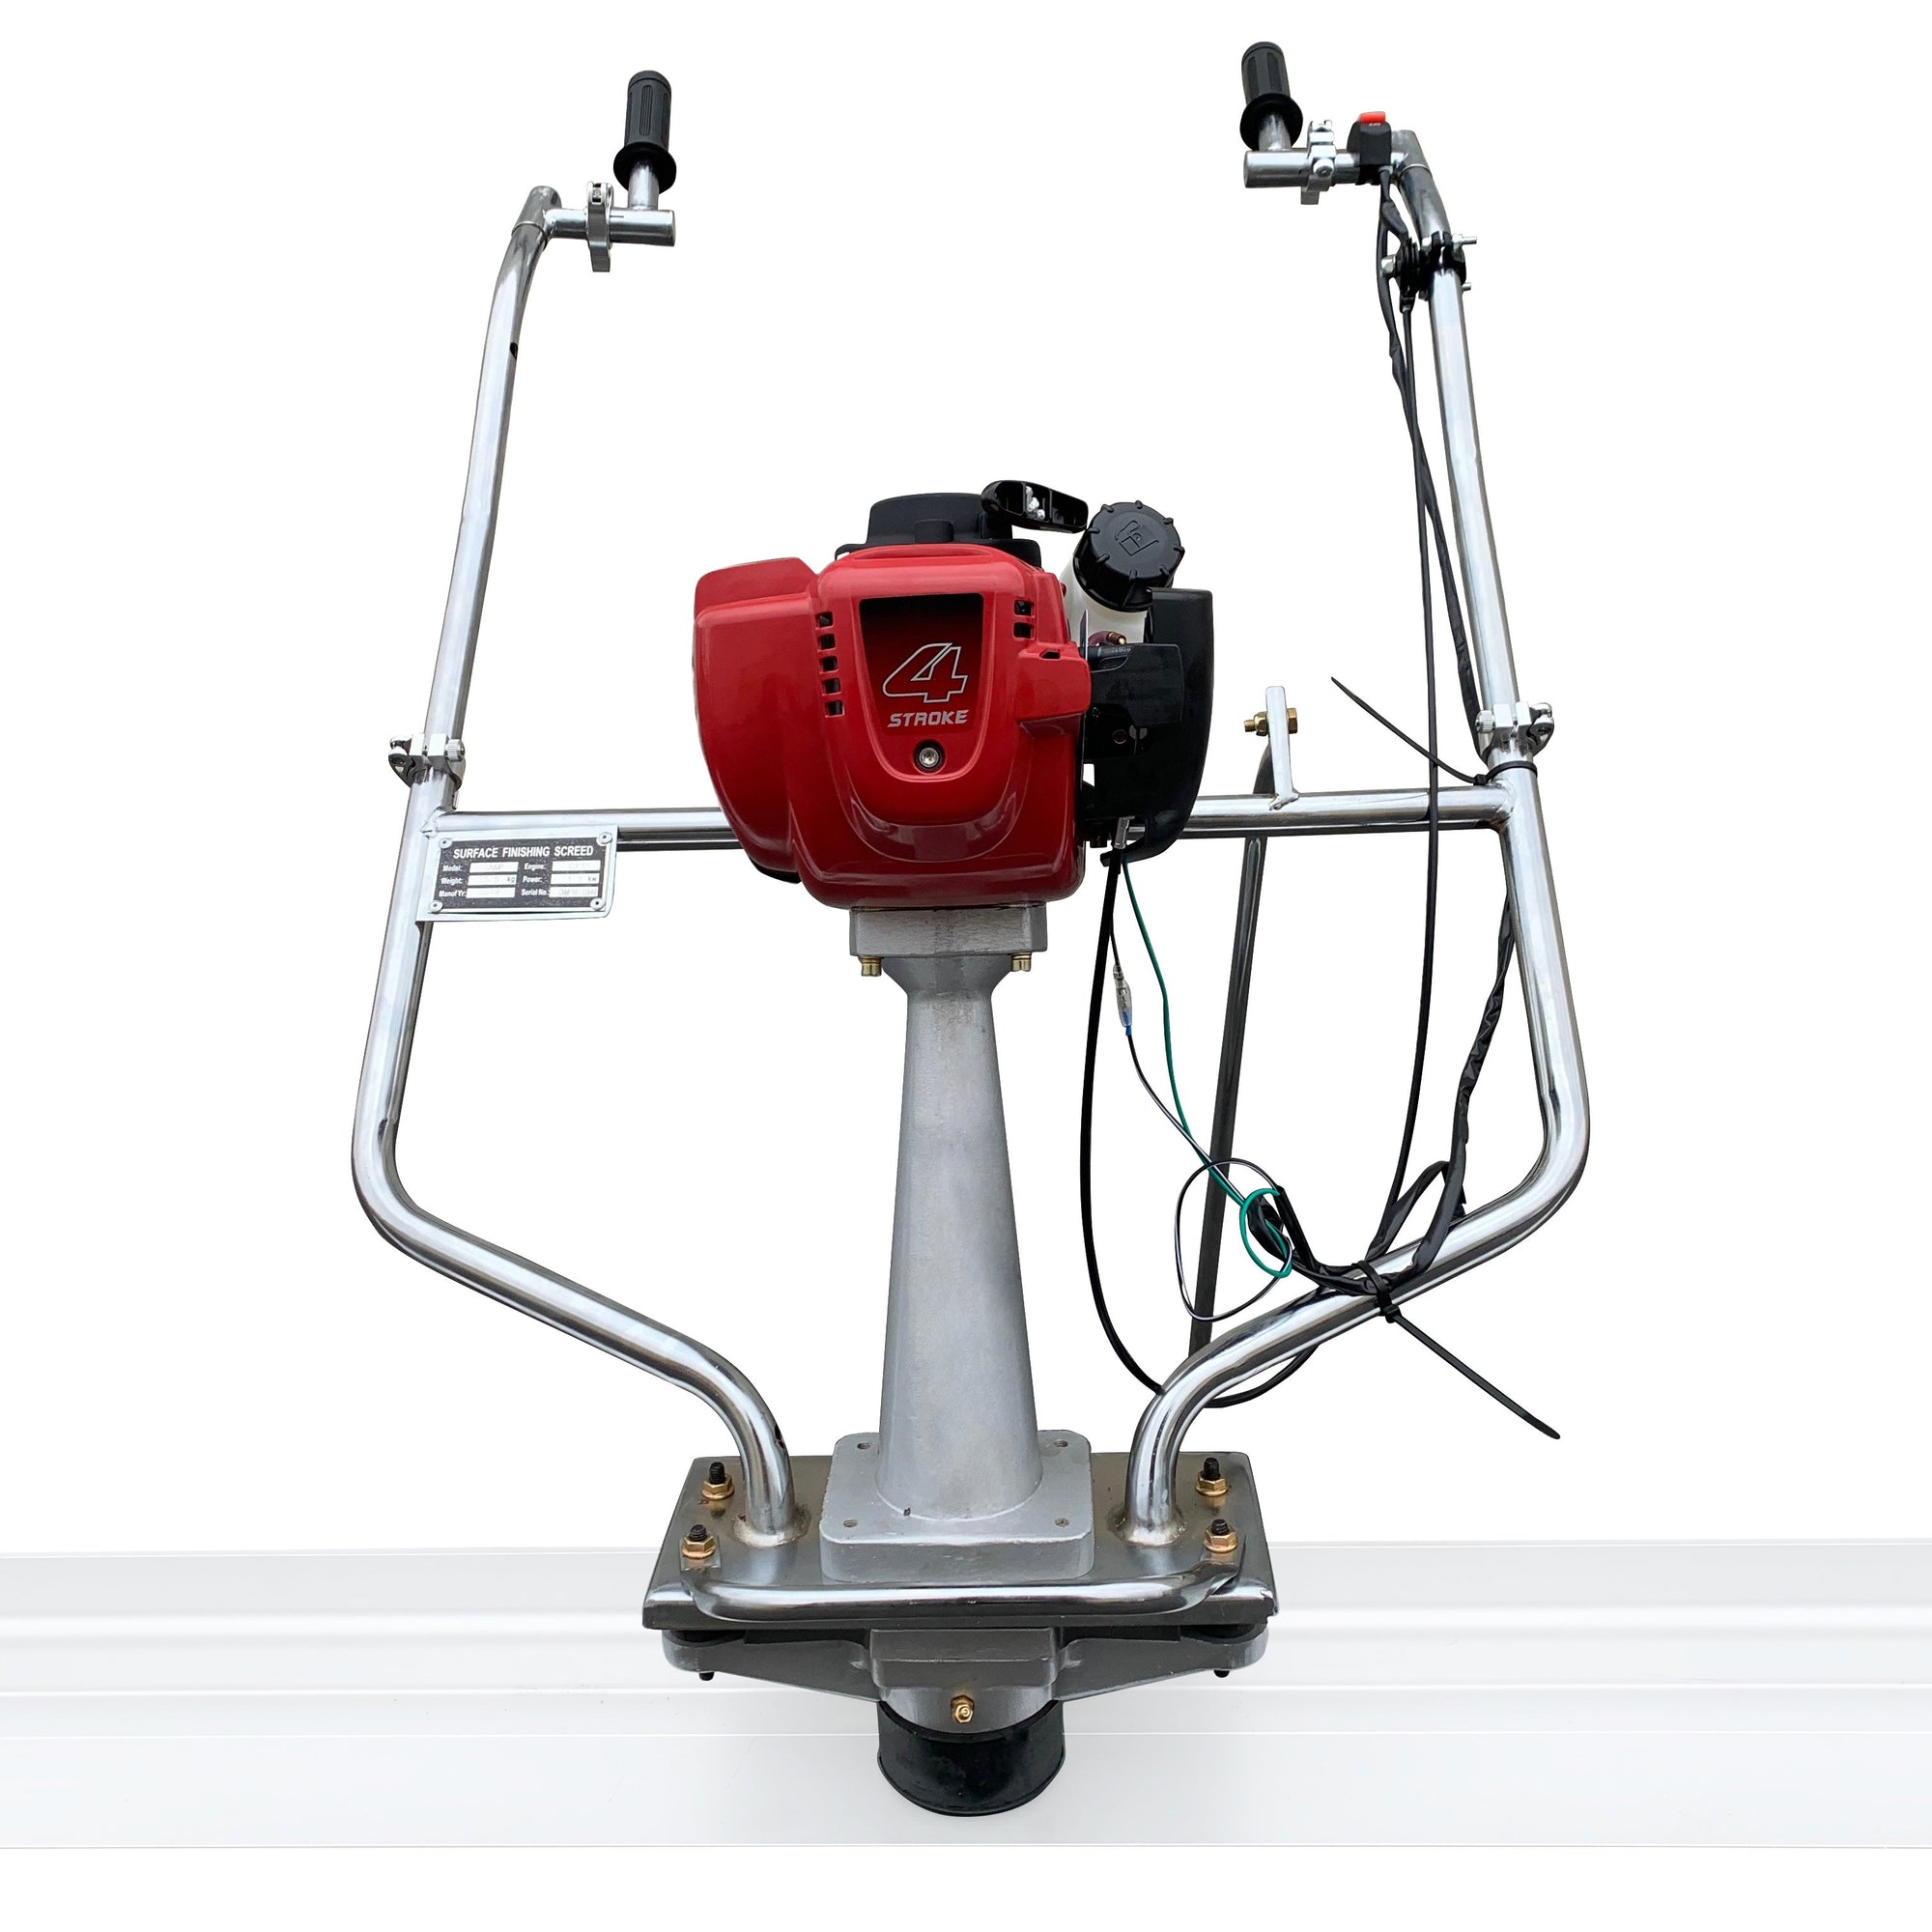 Honda Vibrating Gas Concrete Power Screed ENGINE ONLY Surface Finishing Float